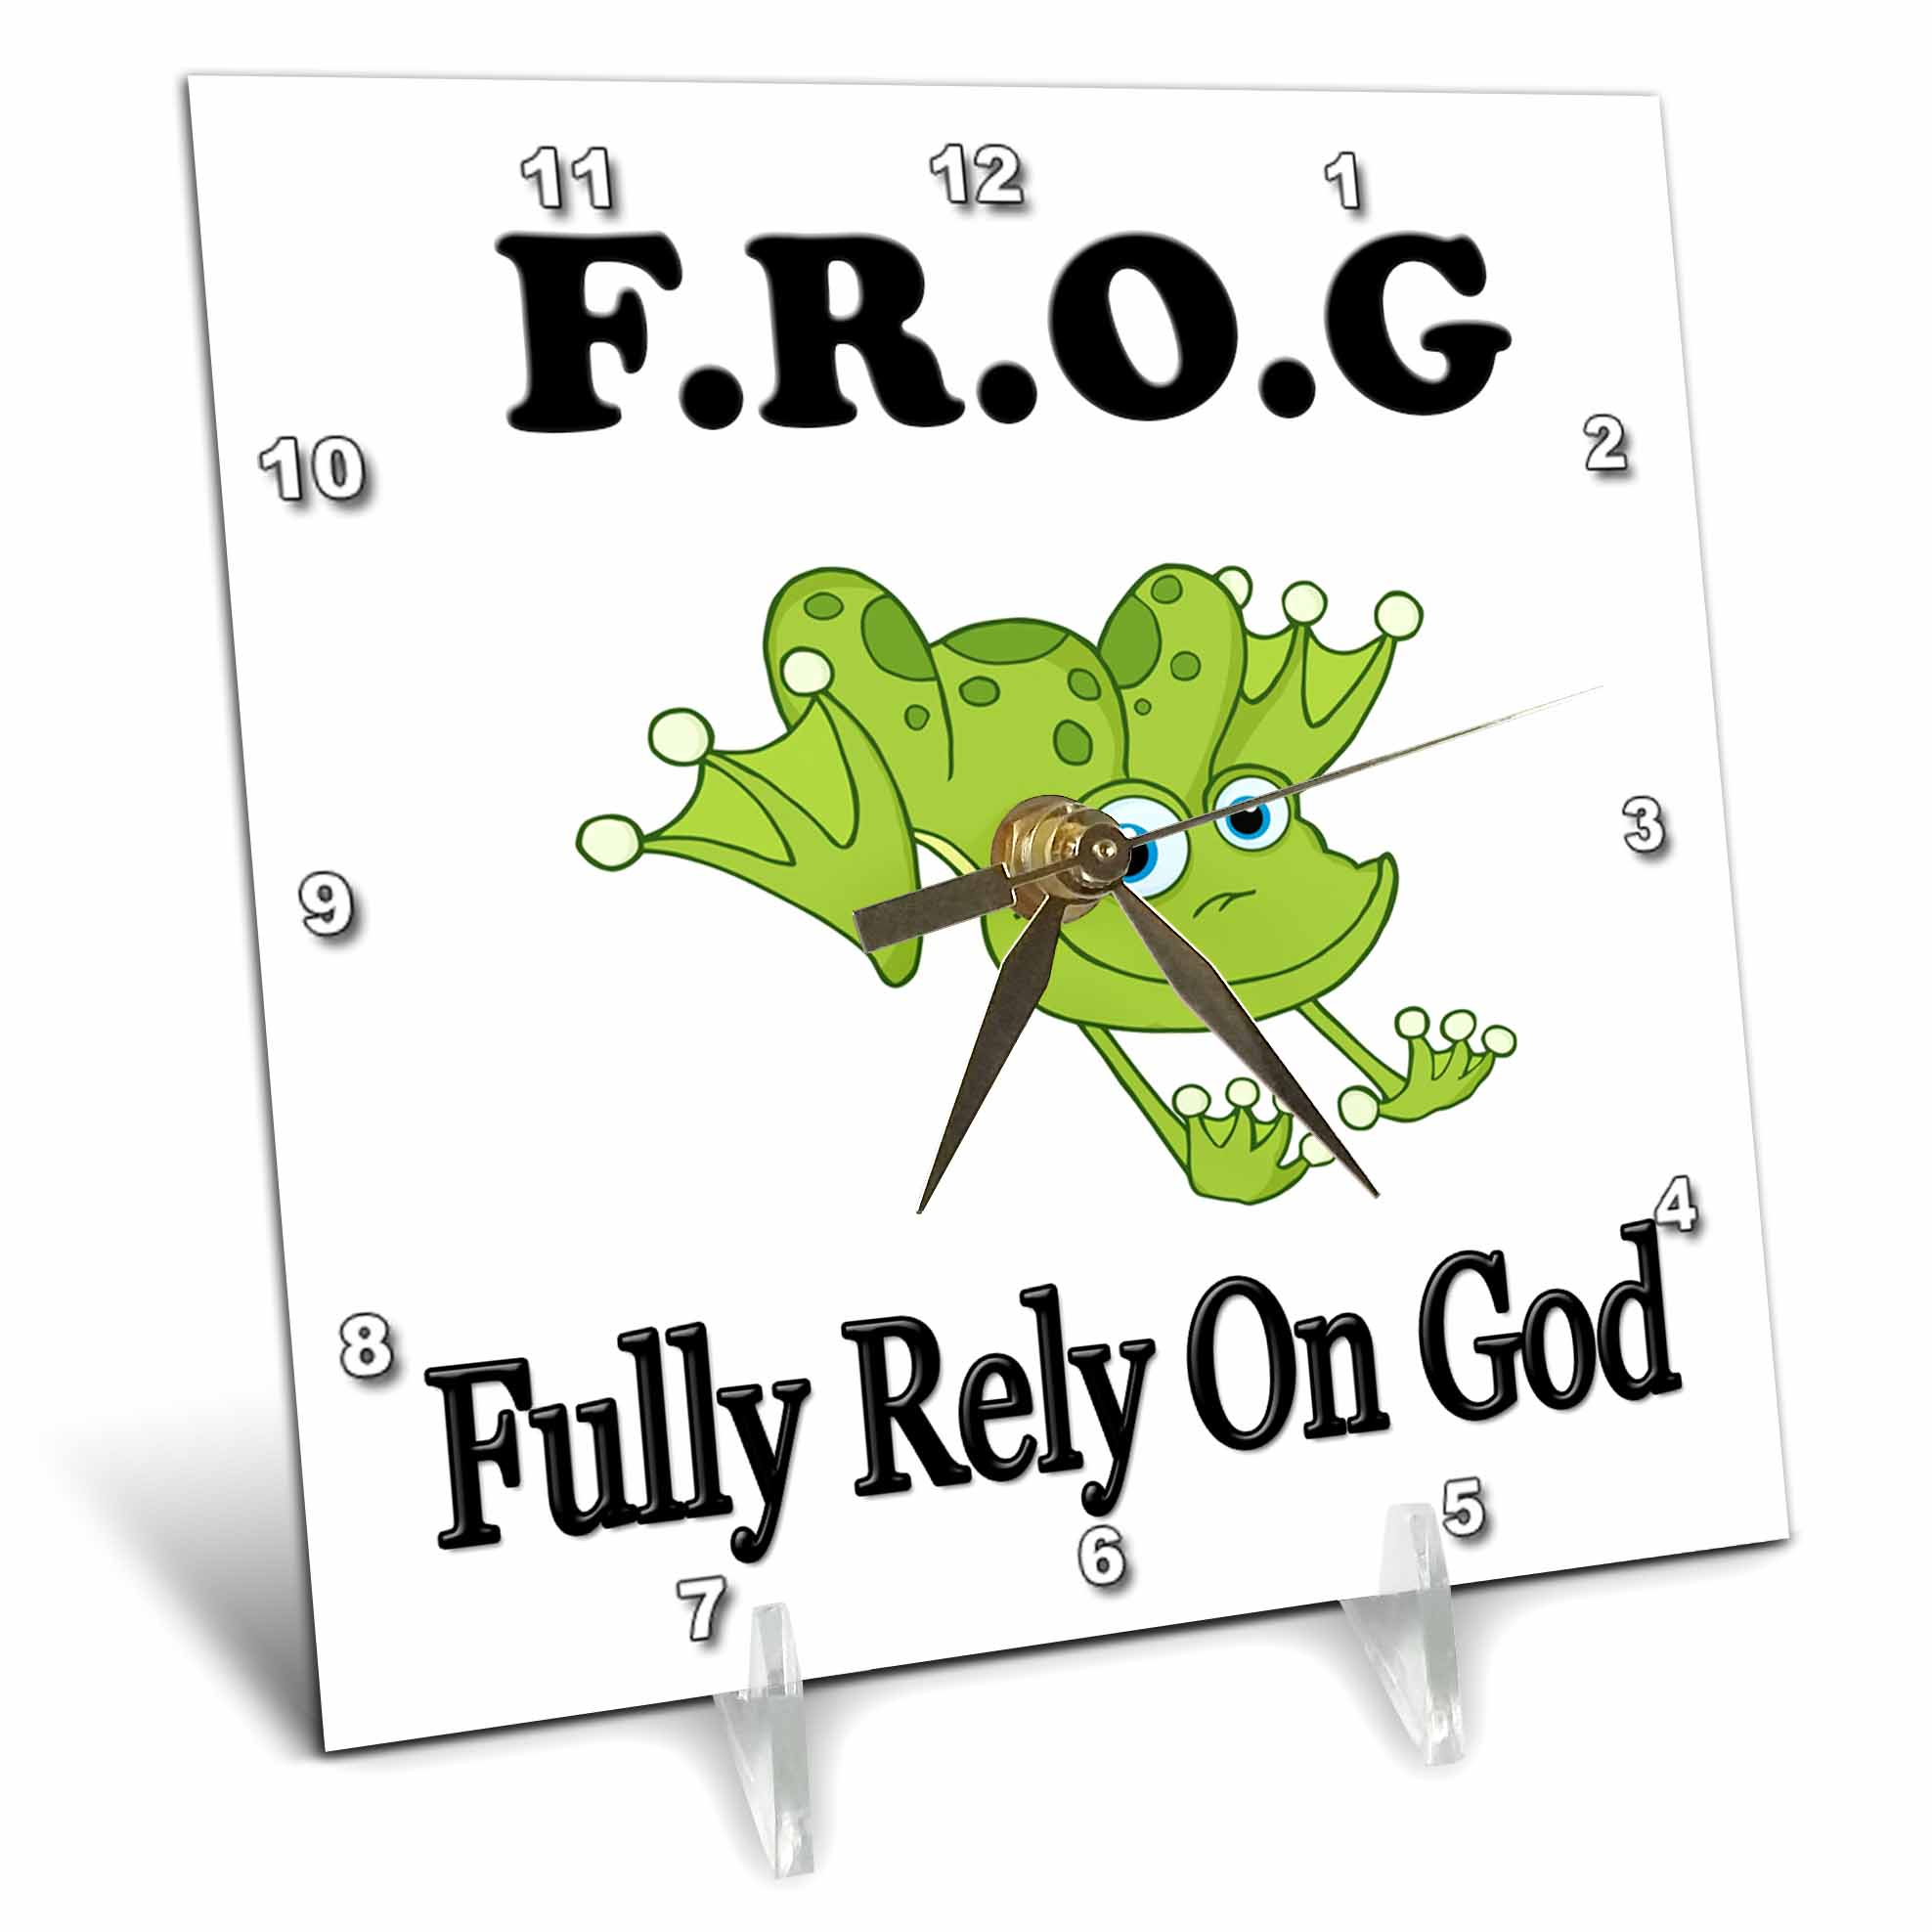 3dRose FROG fully rely on god, Desk Clock, 6 by 6-inch by 3dRose